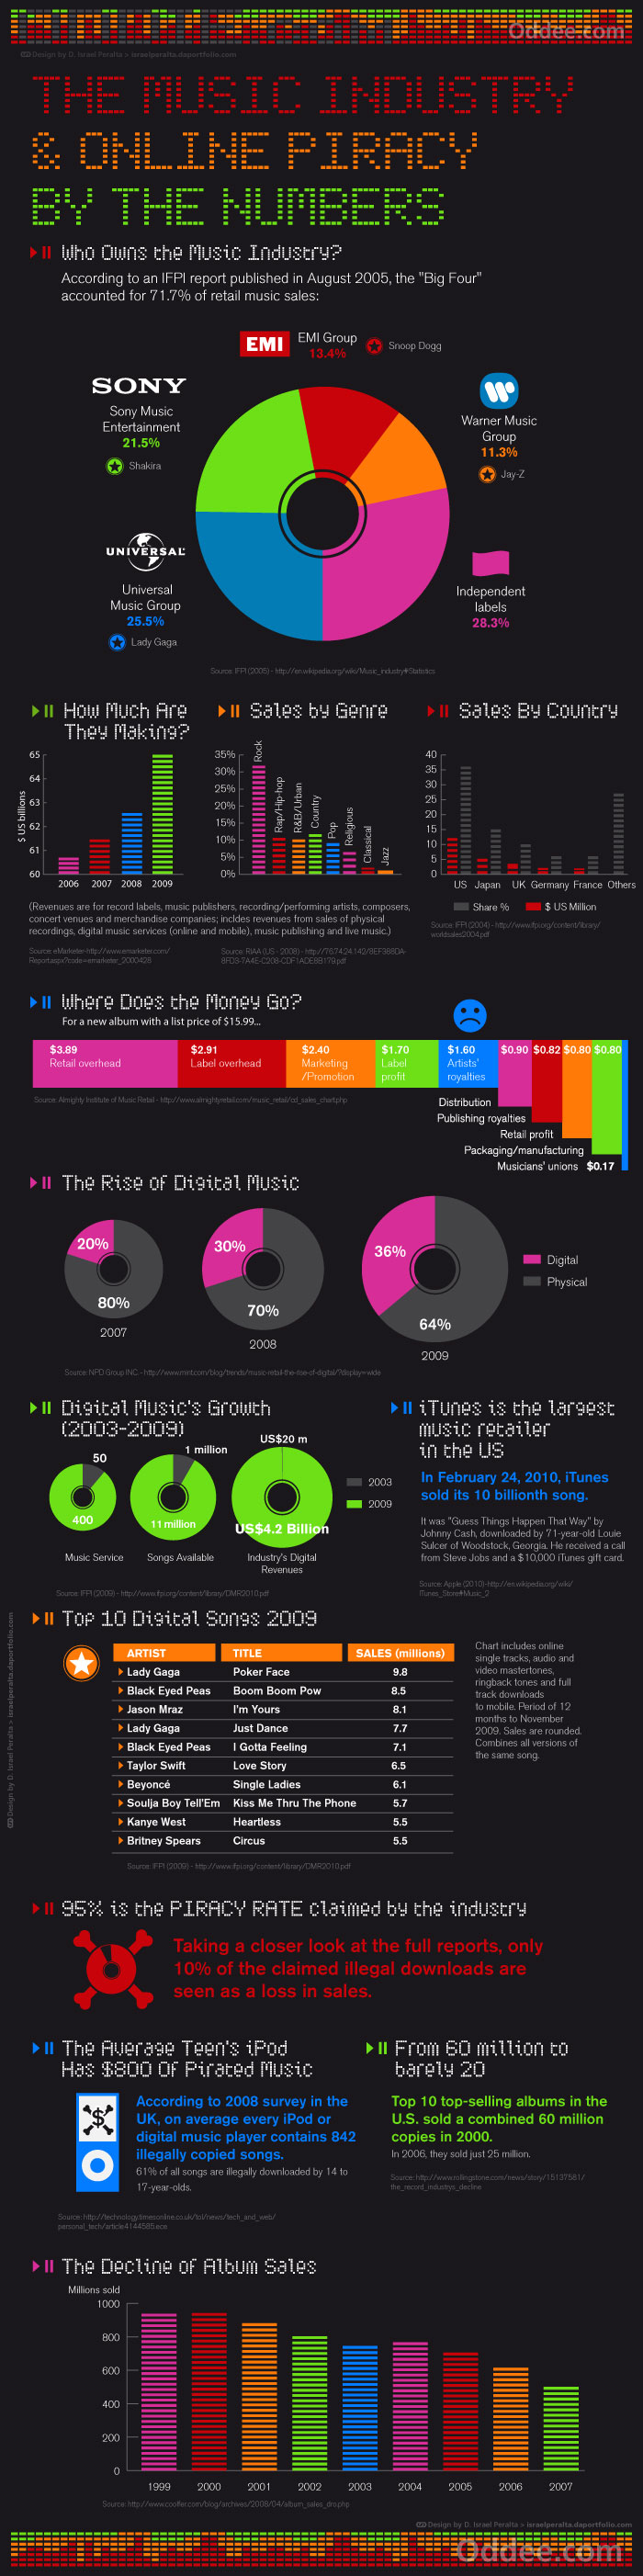 online piracy essay the music industry and online piracy  the music industry and online piracy infographic by the numbers a high resolution version